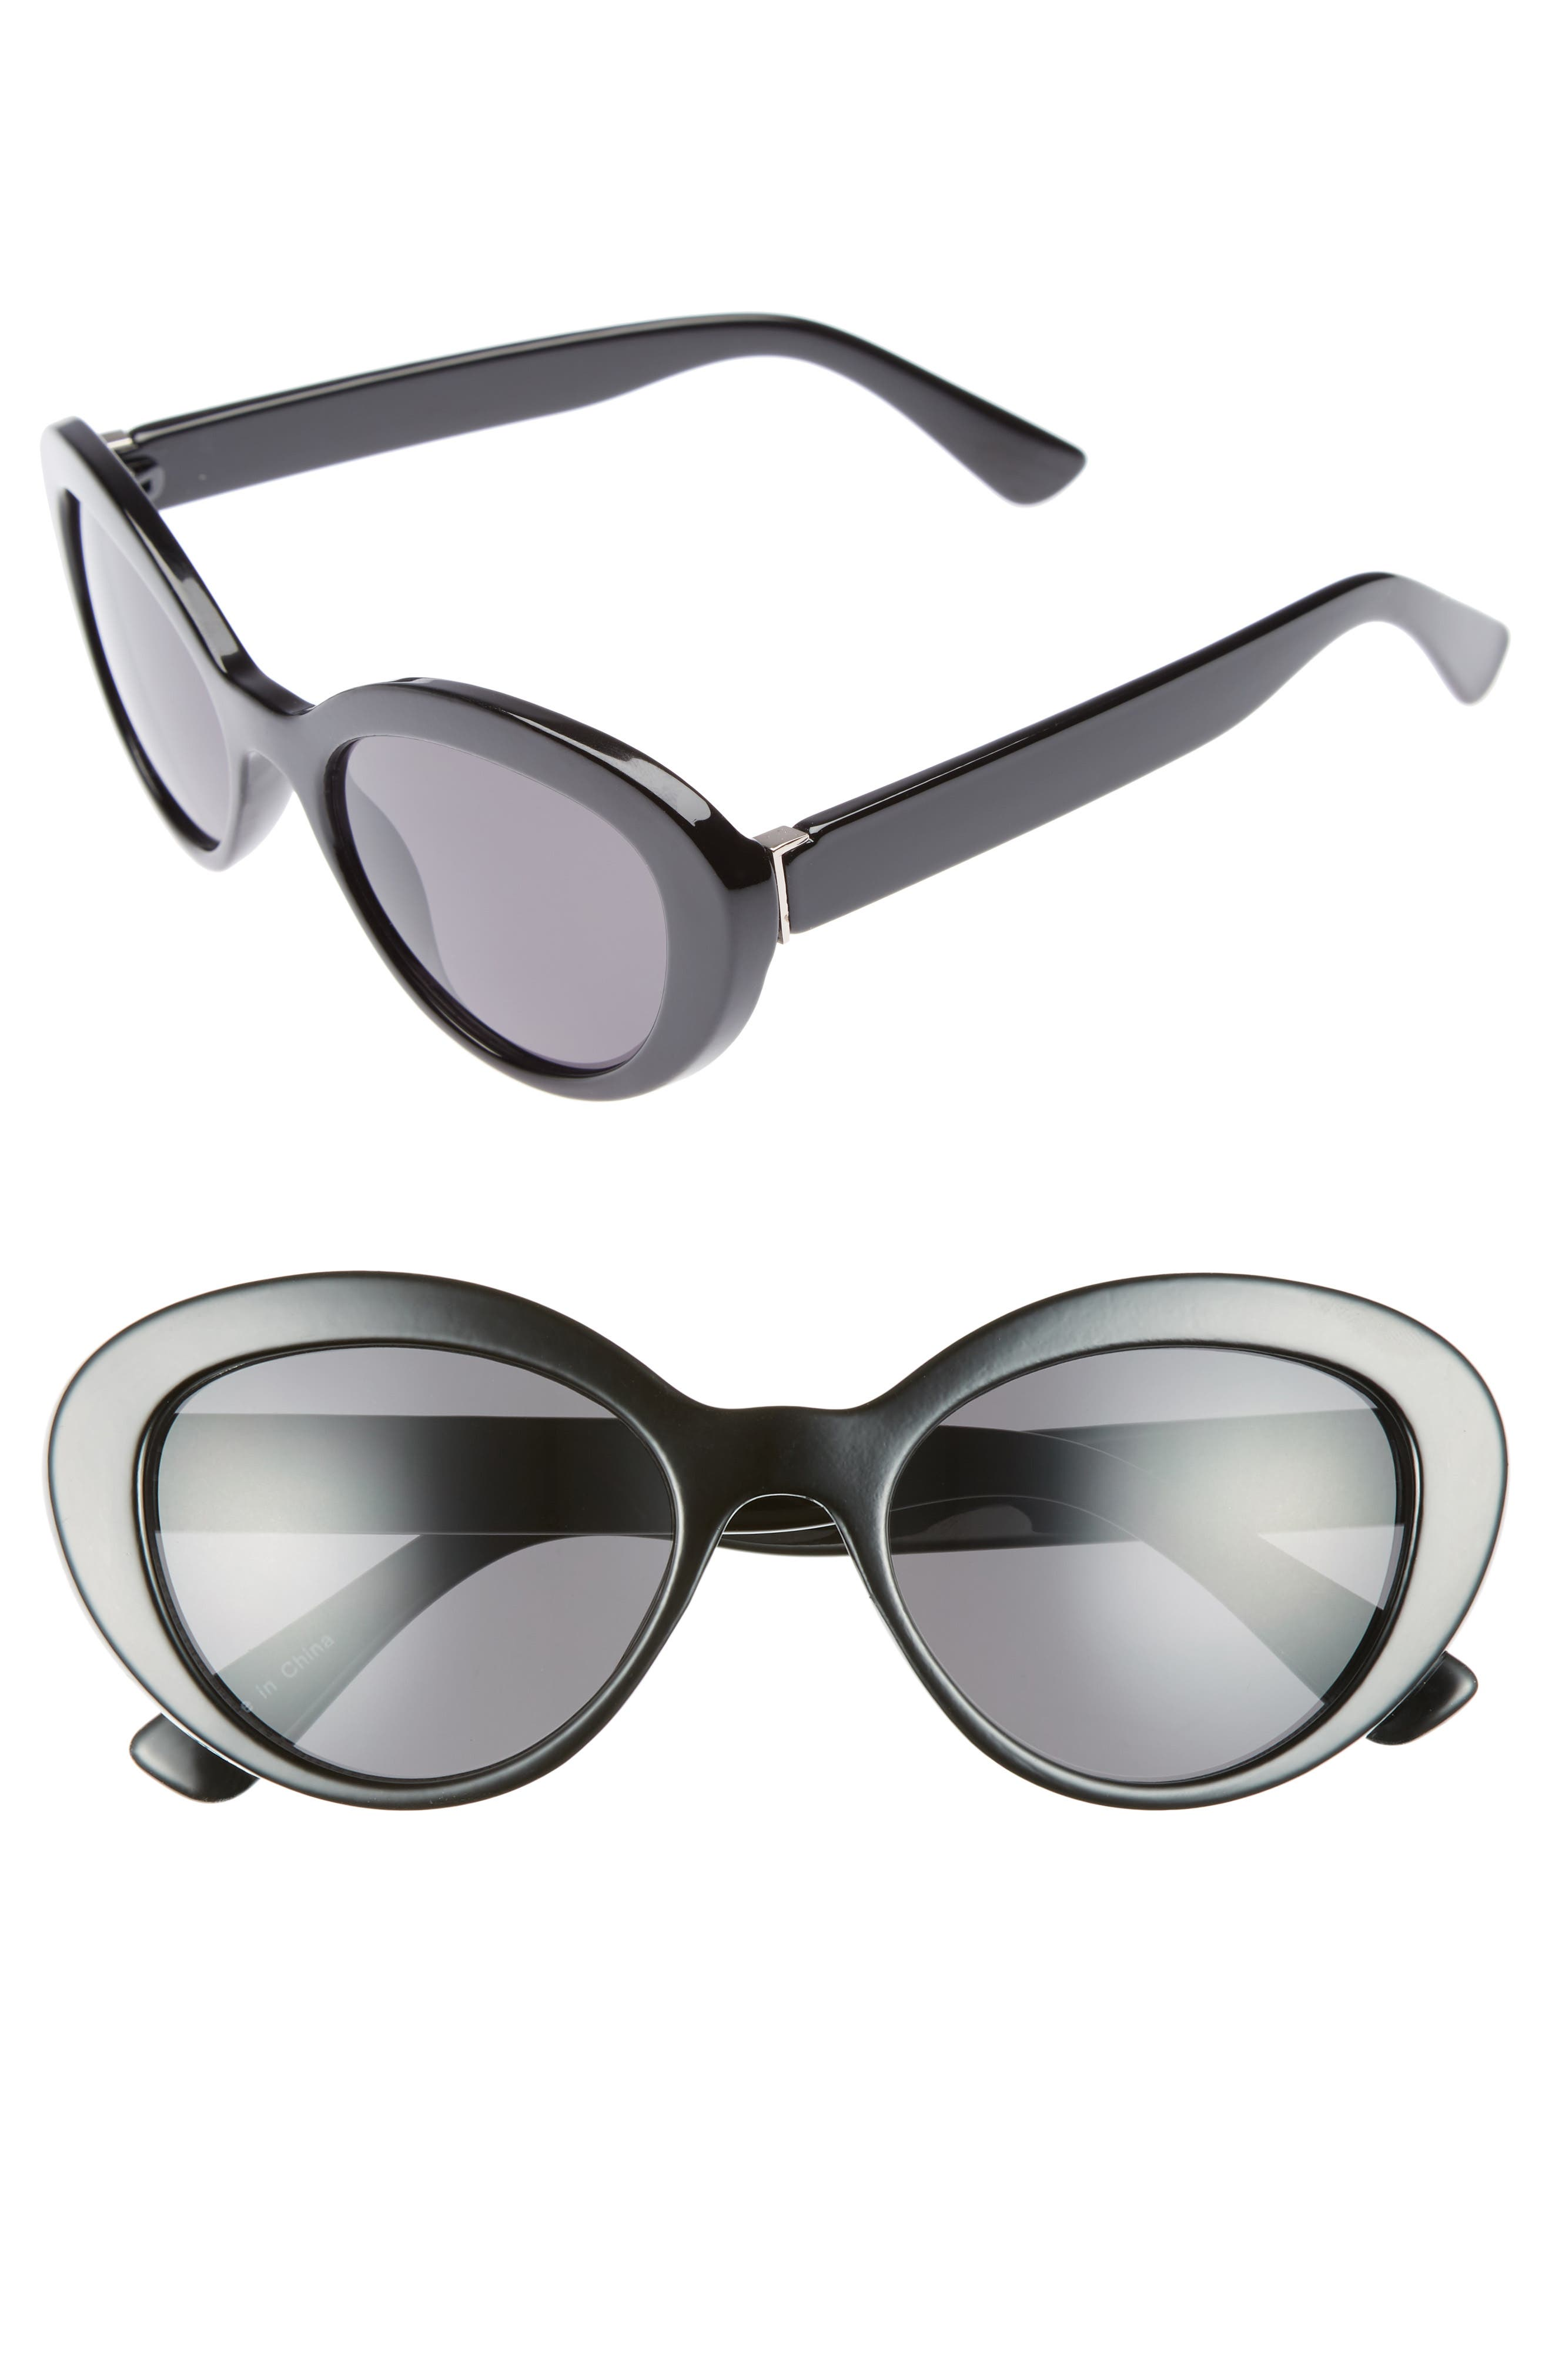 50mm Vintage Cat Eye Sunglasses,                             Main thumbnail 1, color,                             001